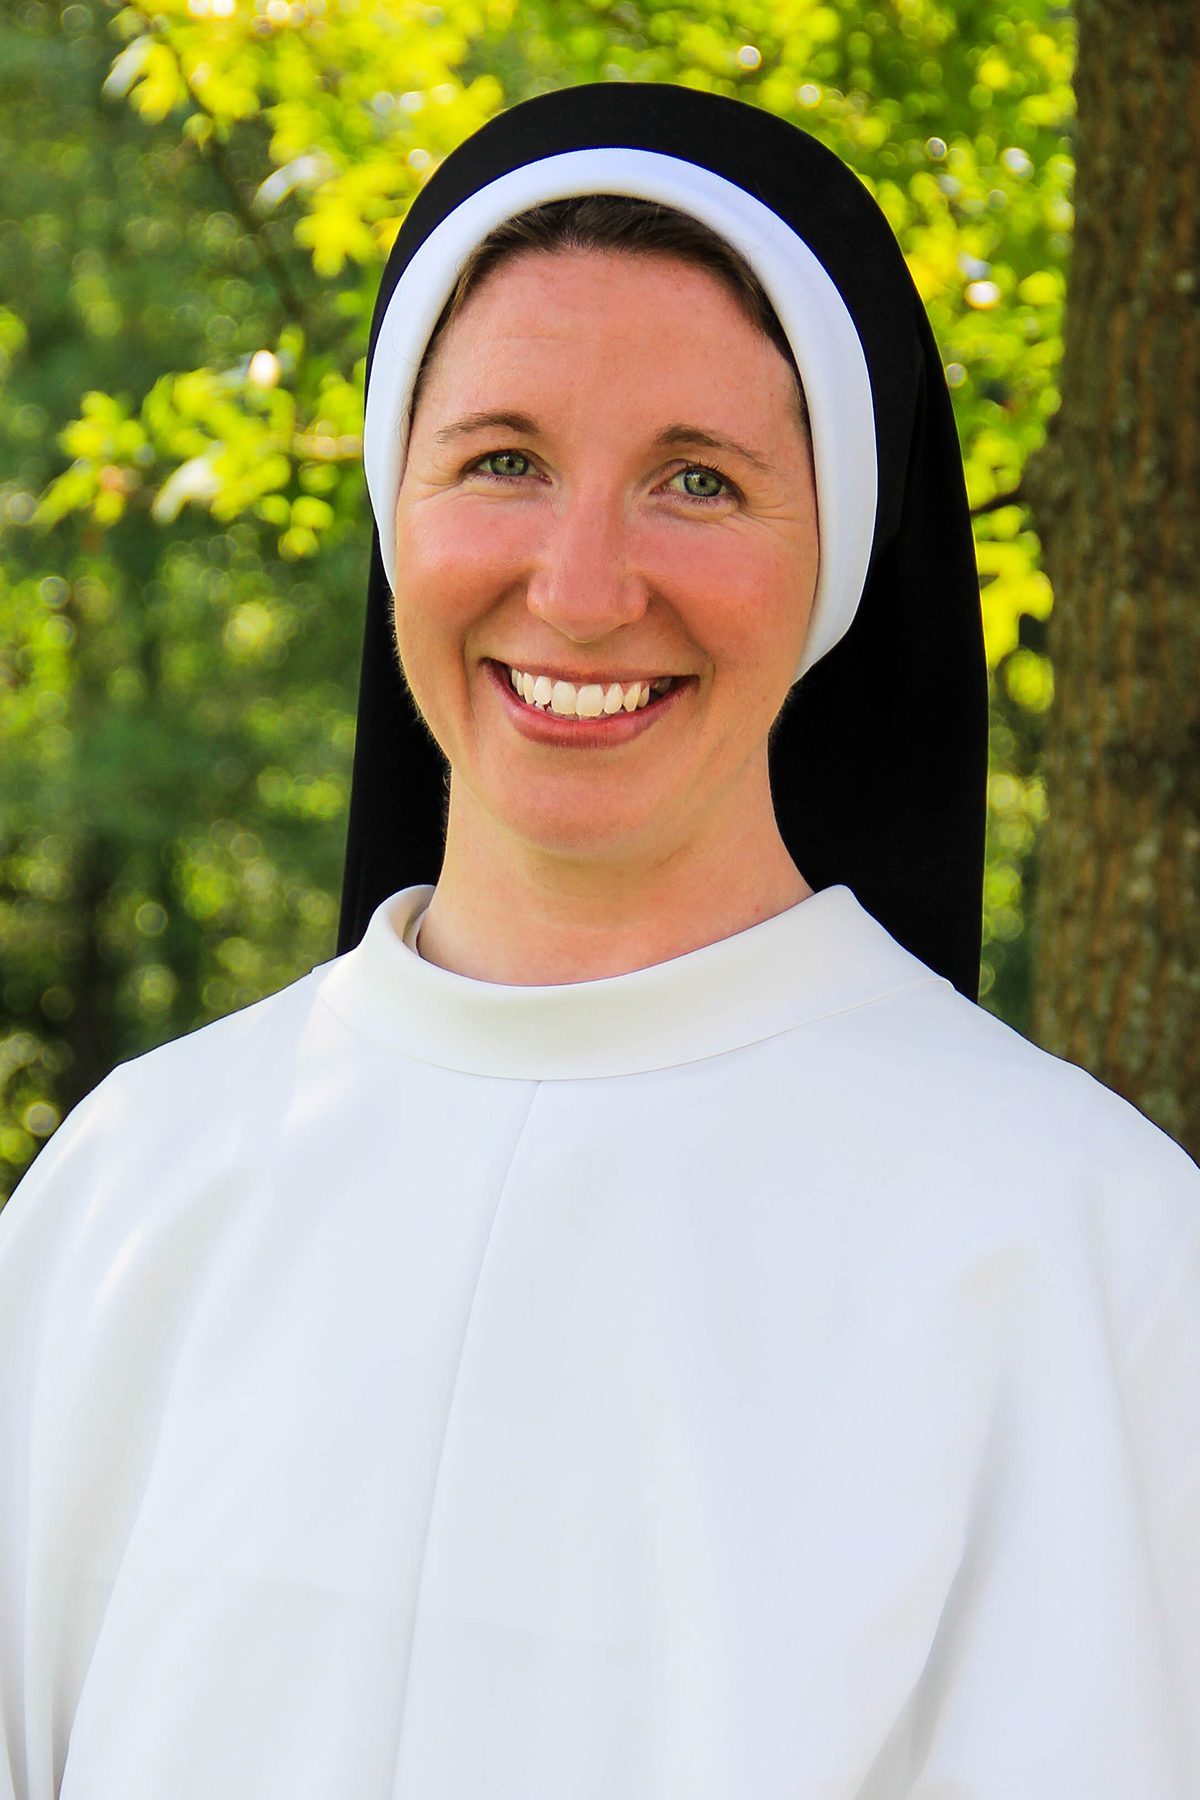 Sister Beatrice, 8A